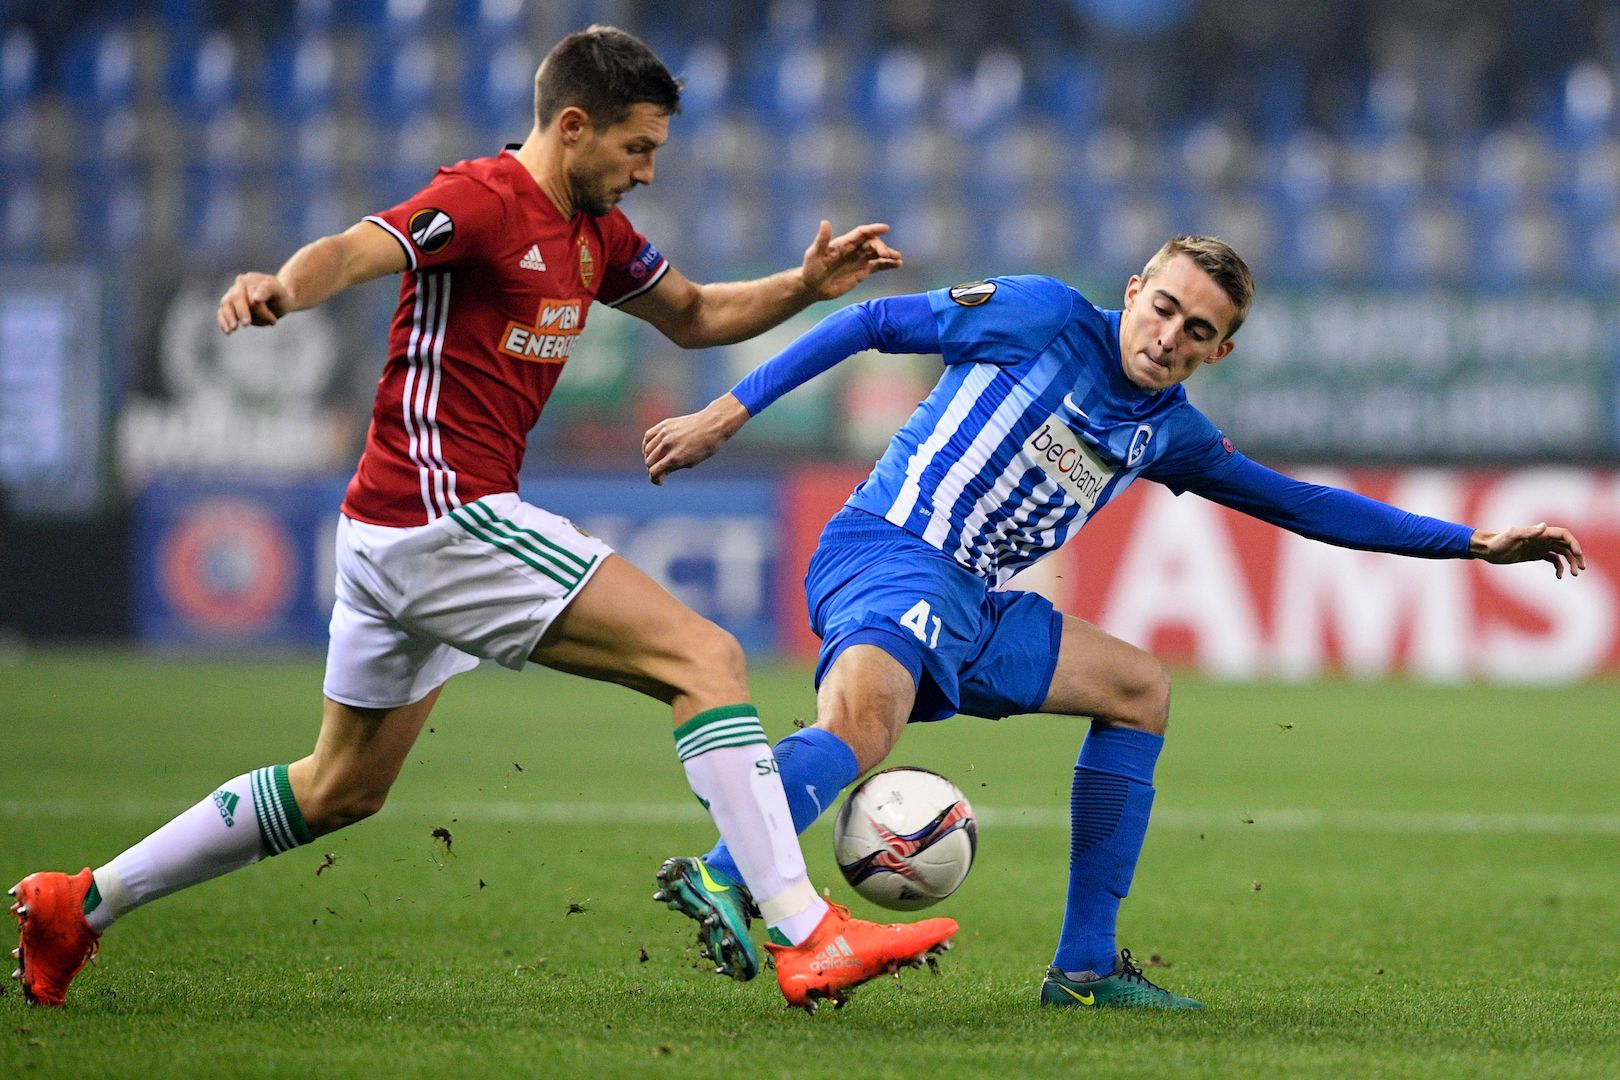 Rapid Wien's Austrian defender Thomas Schrammel (L) vies with Genk's Belgian defender Timothy Castagne during the UEFA Europa League football match between KRC Genk and Rapid Wien, on November 24, 2016, in Genk. / AFP / BELGA / YORICK JANSENS / Belgium OUT (Photo credit should read YORICK JANSENS/AFP/Getty Images)